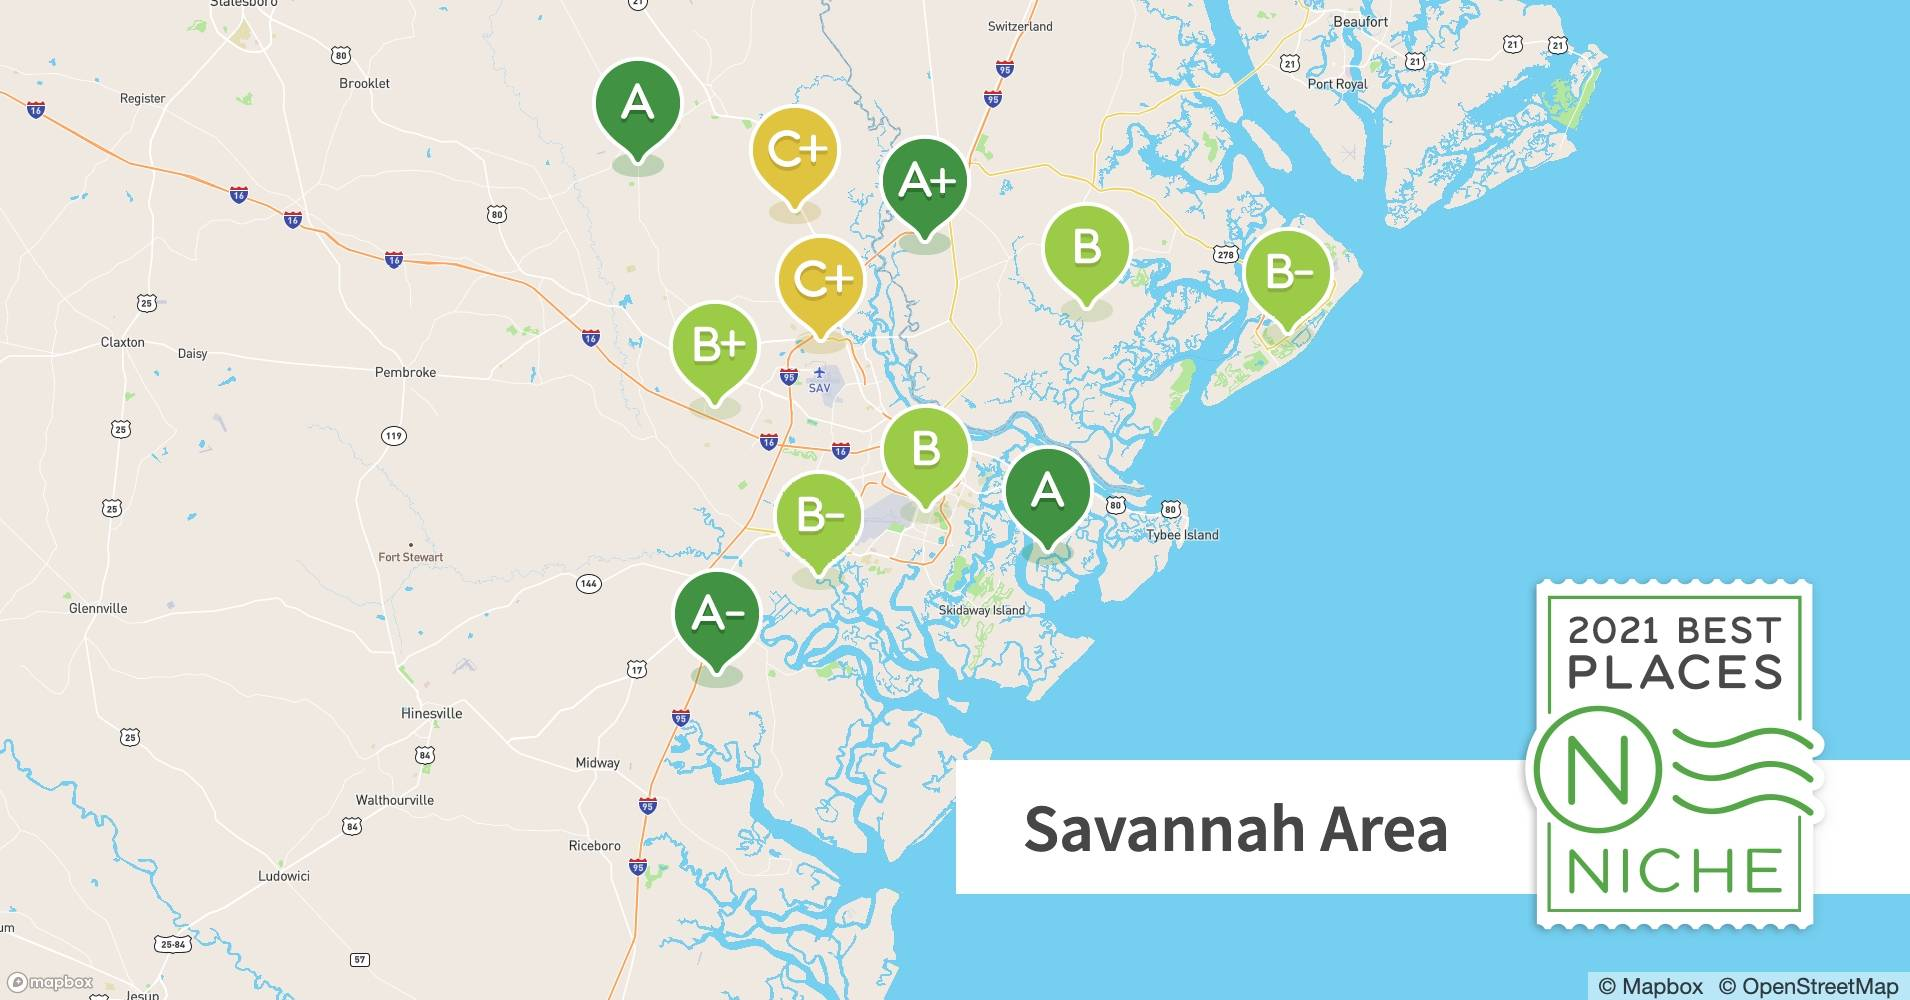 2021 Best Places To Raise A Family In Savannah Area Niche